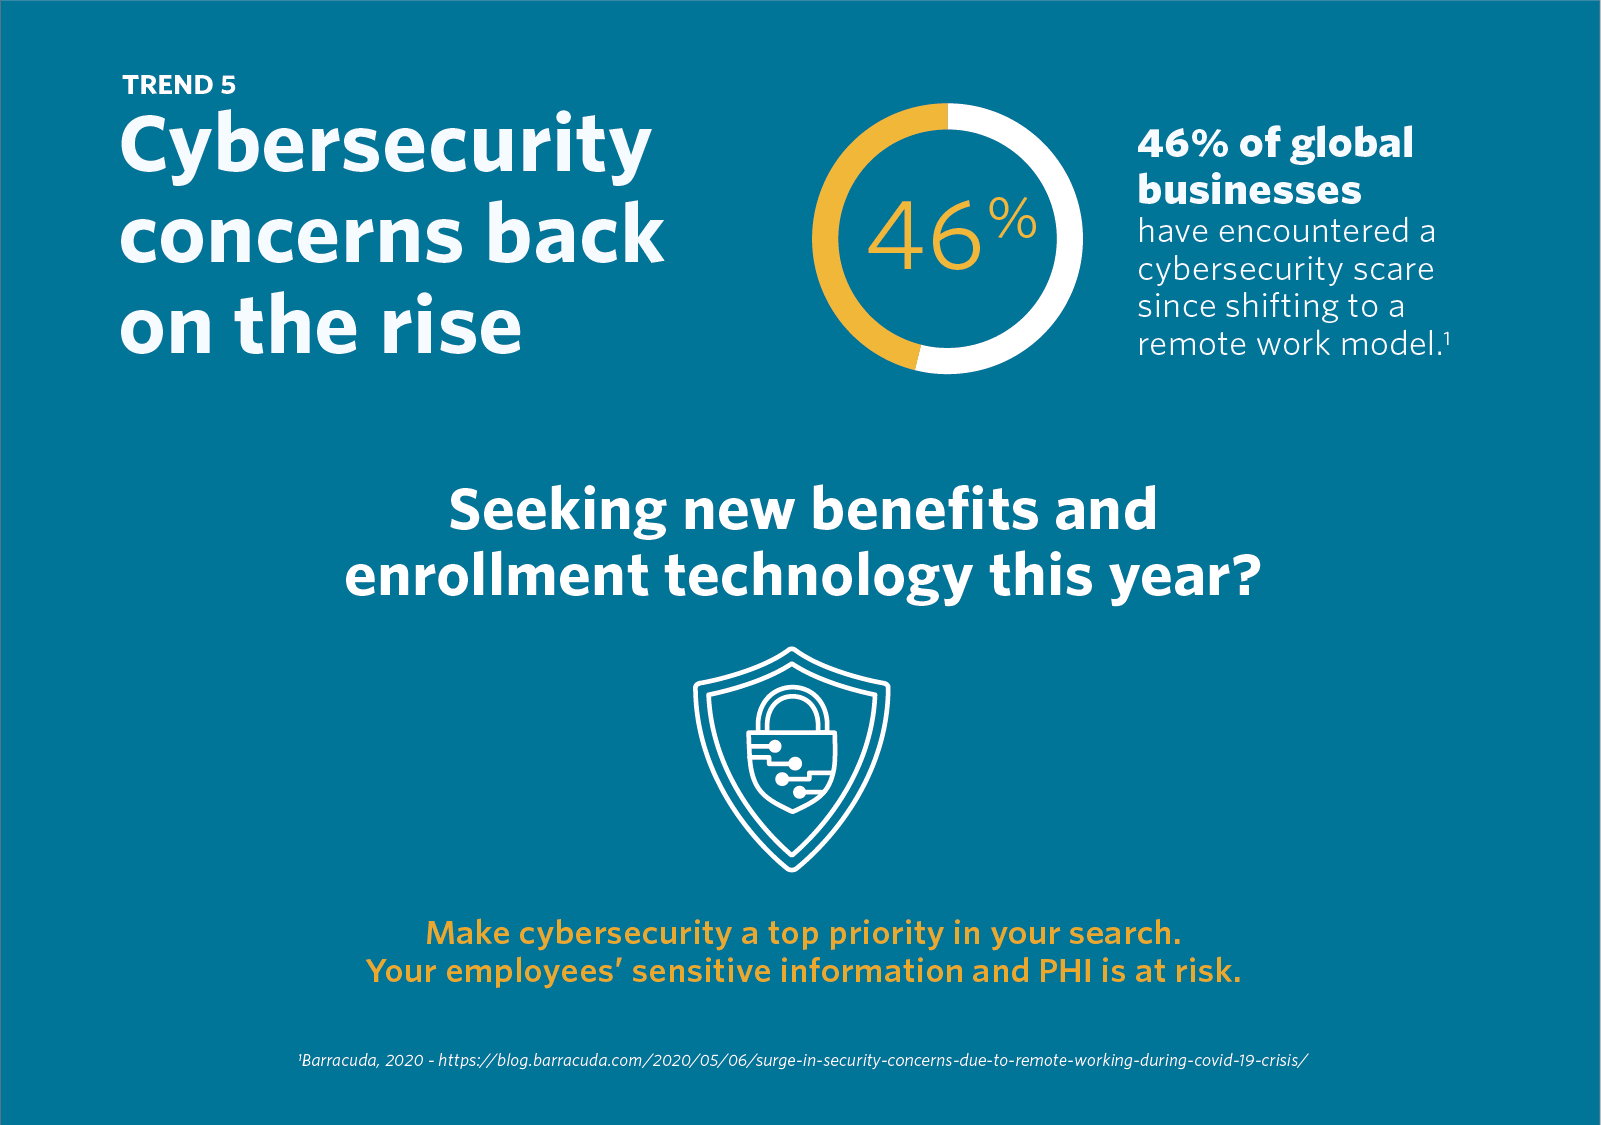 Trend 5 - Cybersecurity concerns back on the rise